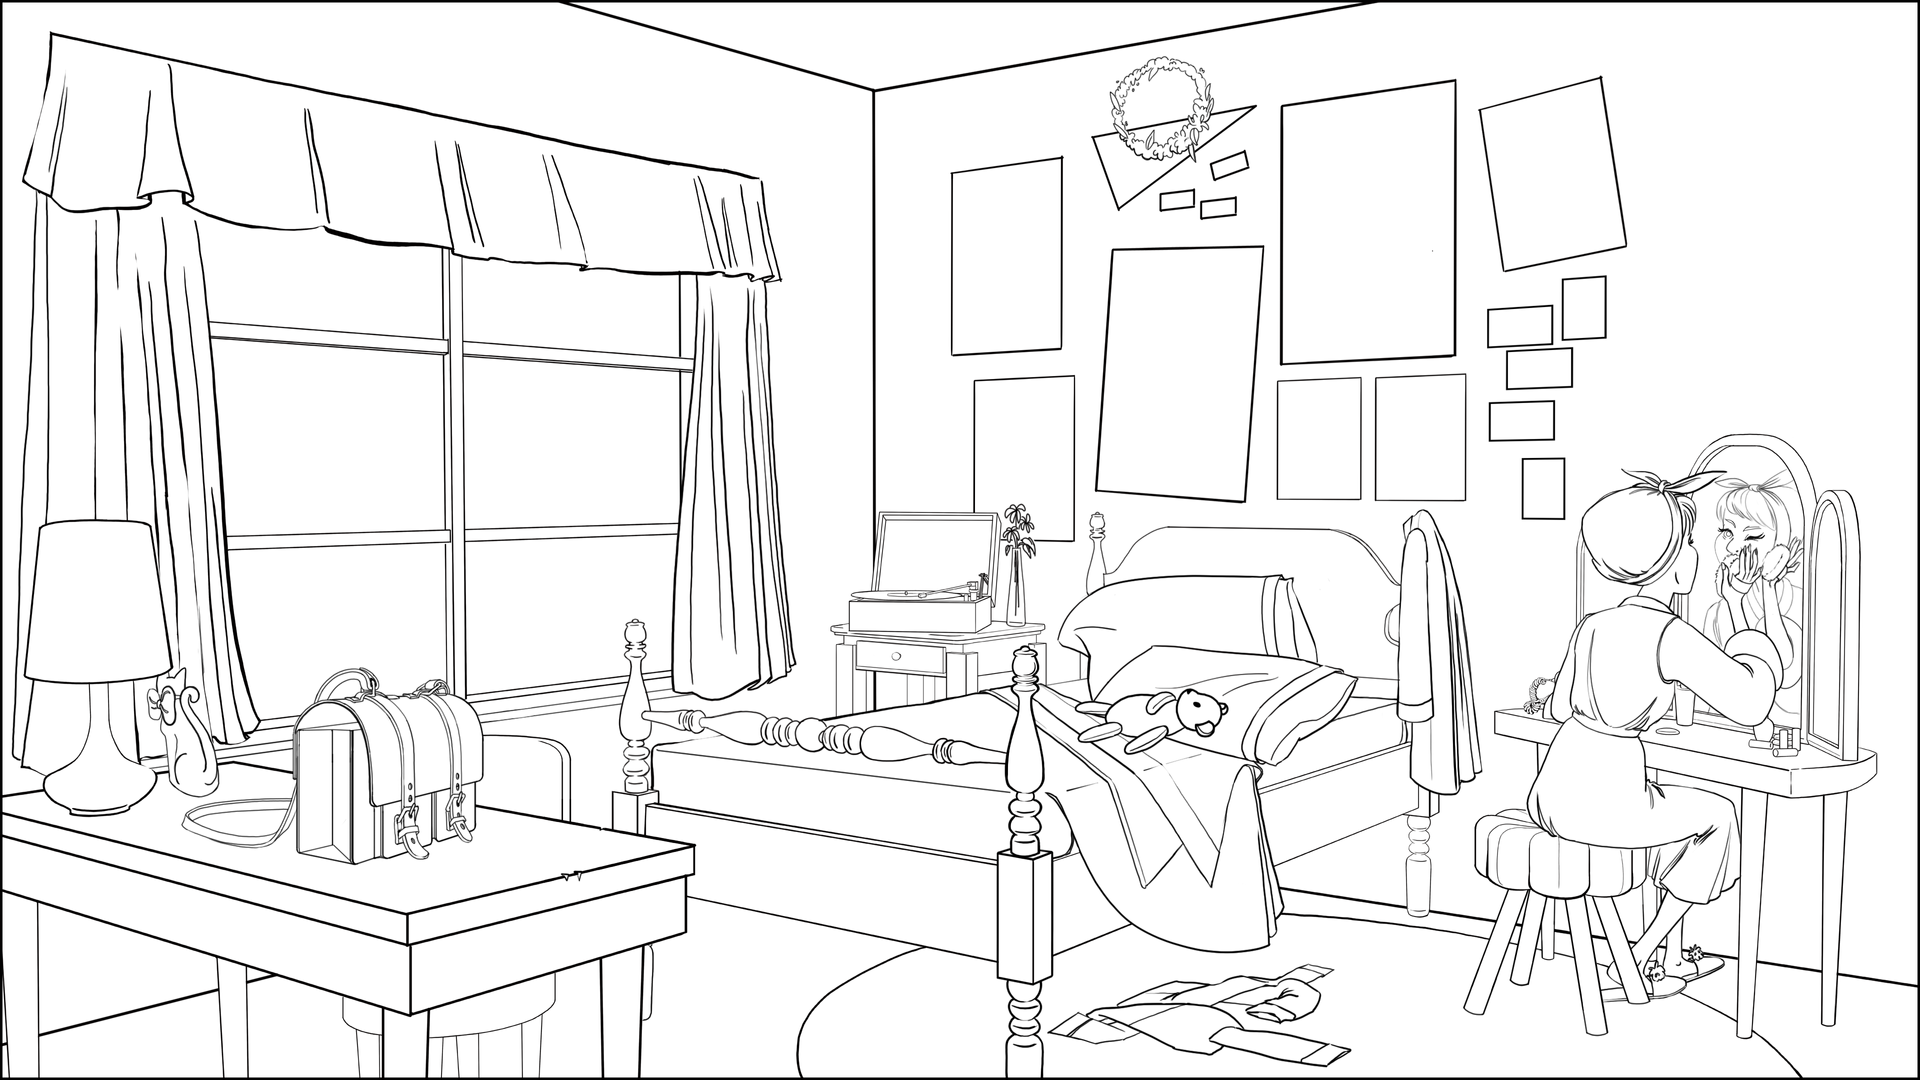 Morning in Dorothy's Room lineart